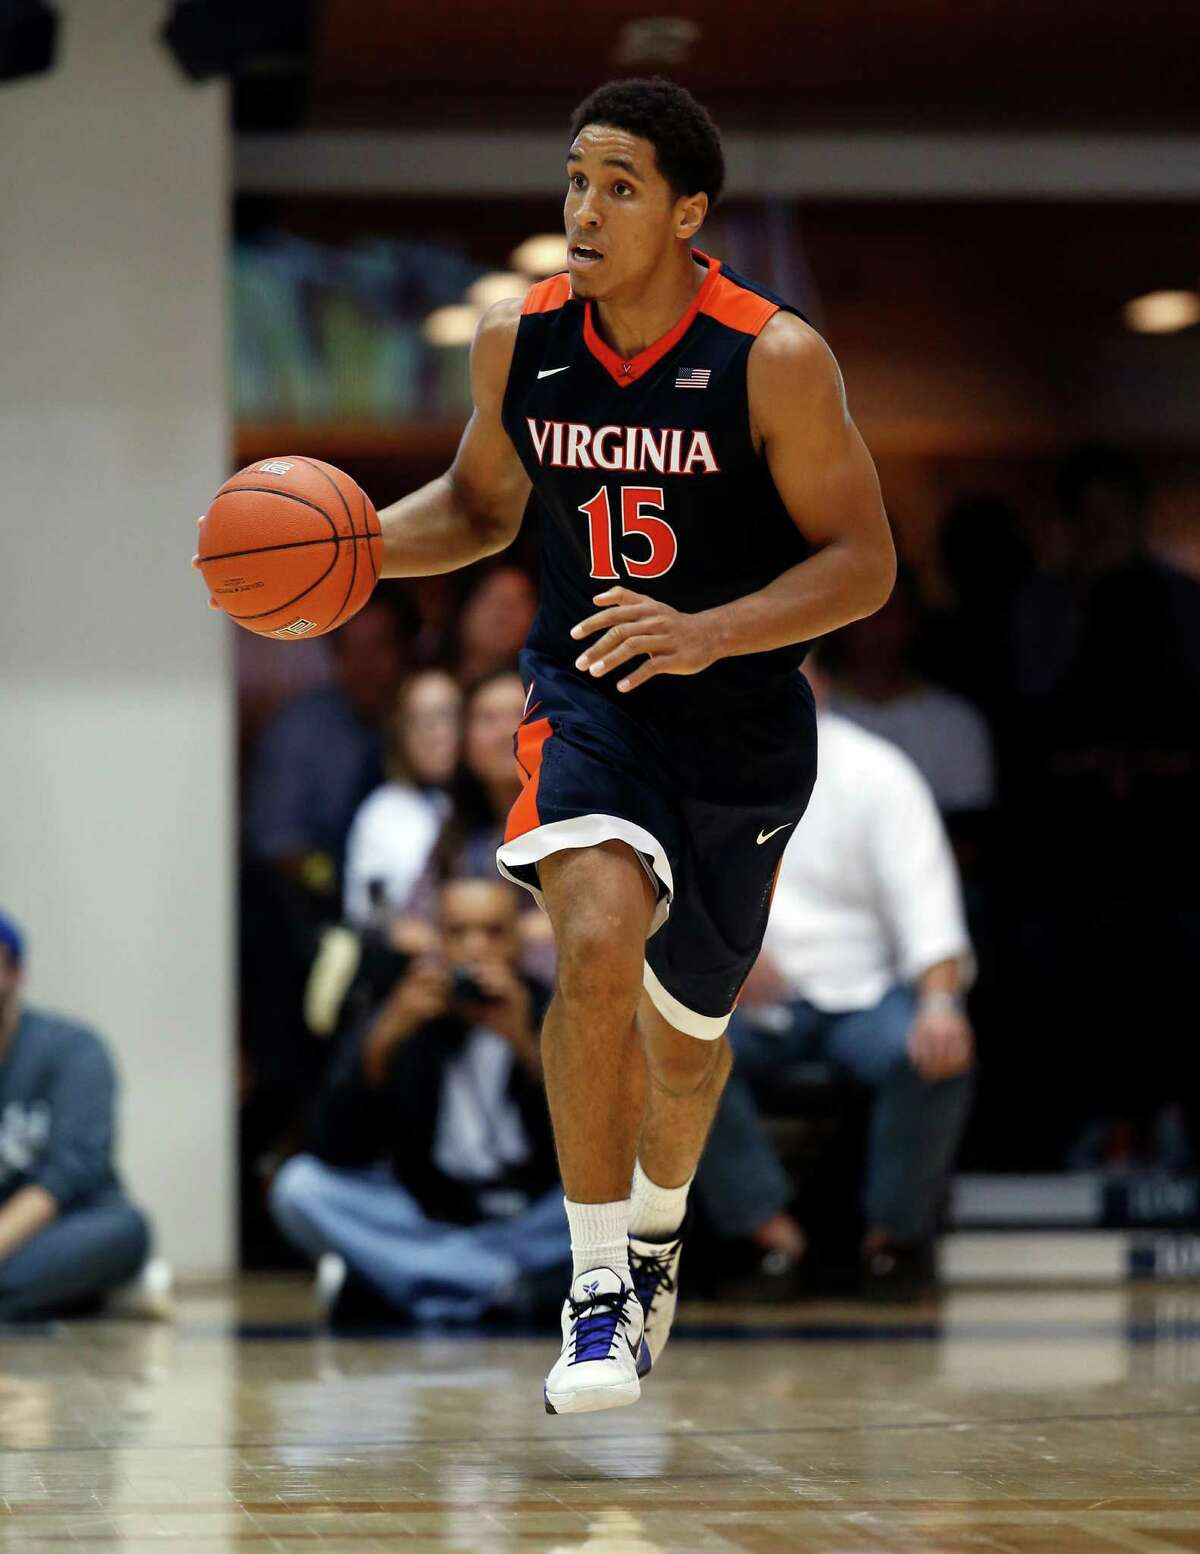 Top four upsets The season started last week, and several of the top teams were surprised in games that were considered easy wins. 3. No. 6 Virginia got a wakeup call earlier this week when unranked George Washington beat the Cavaliers 68-73.